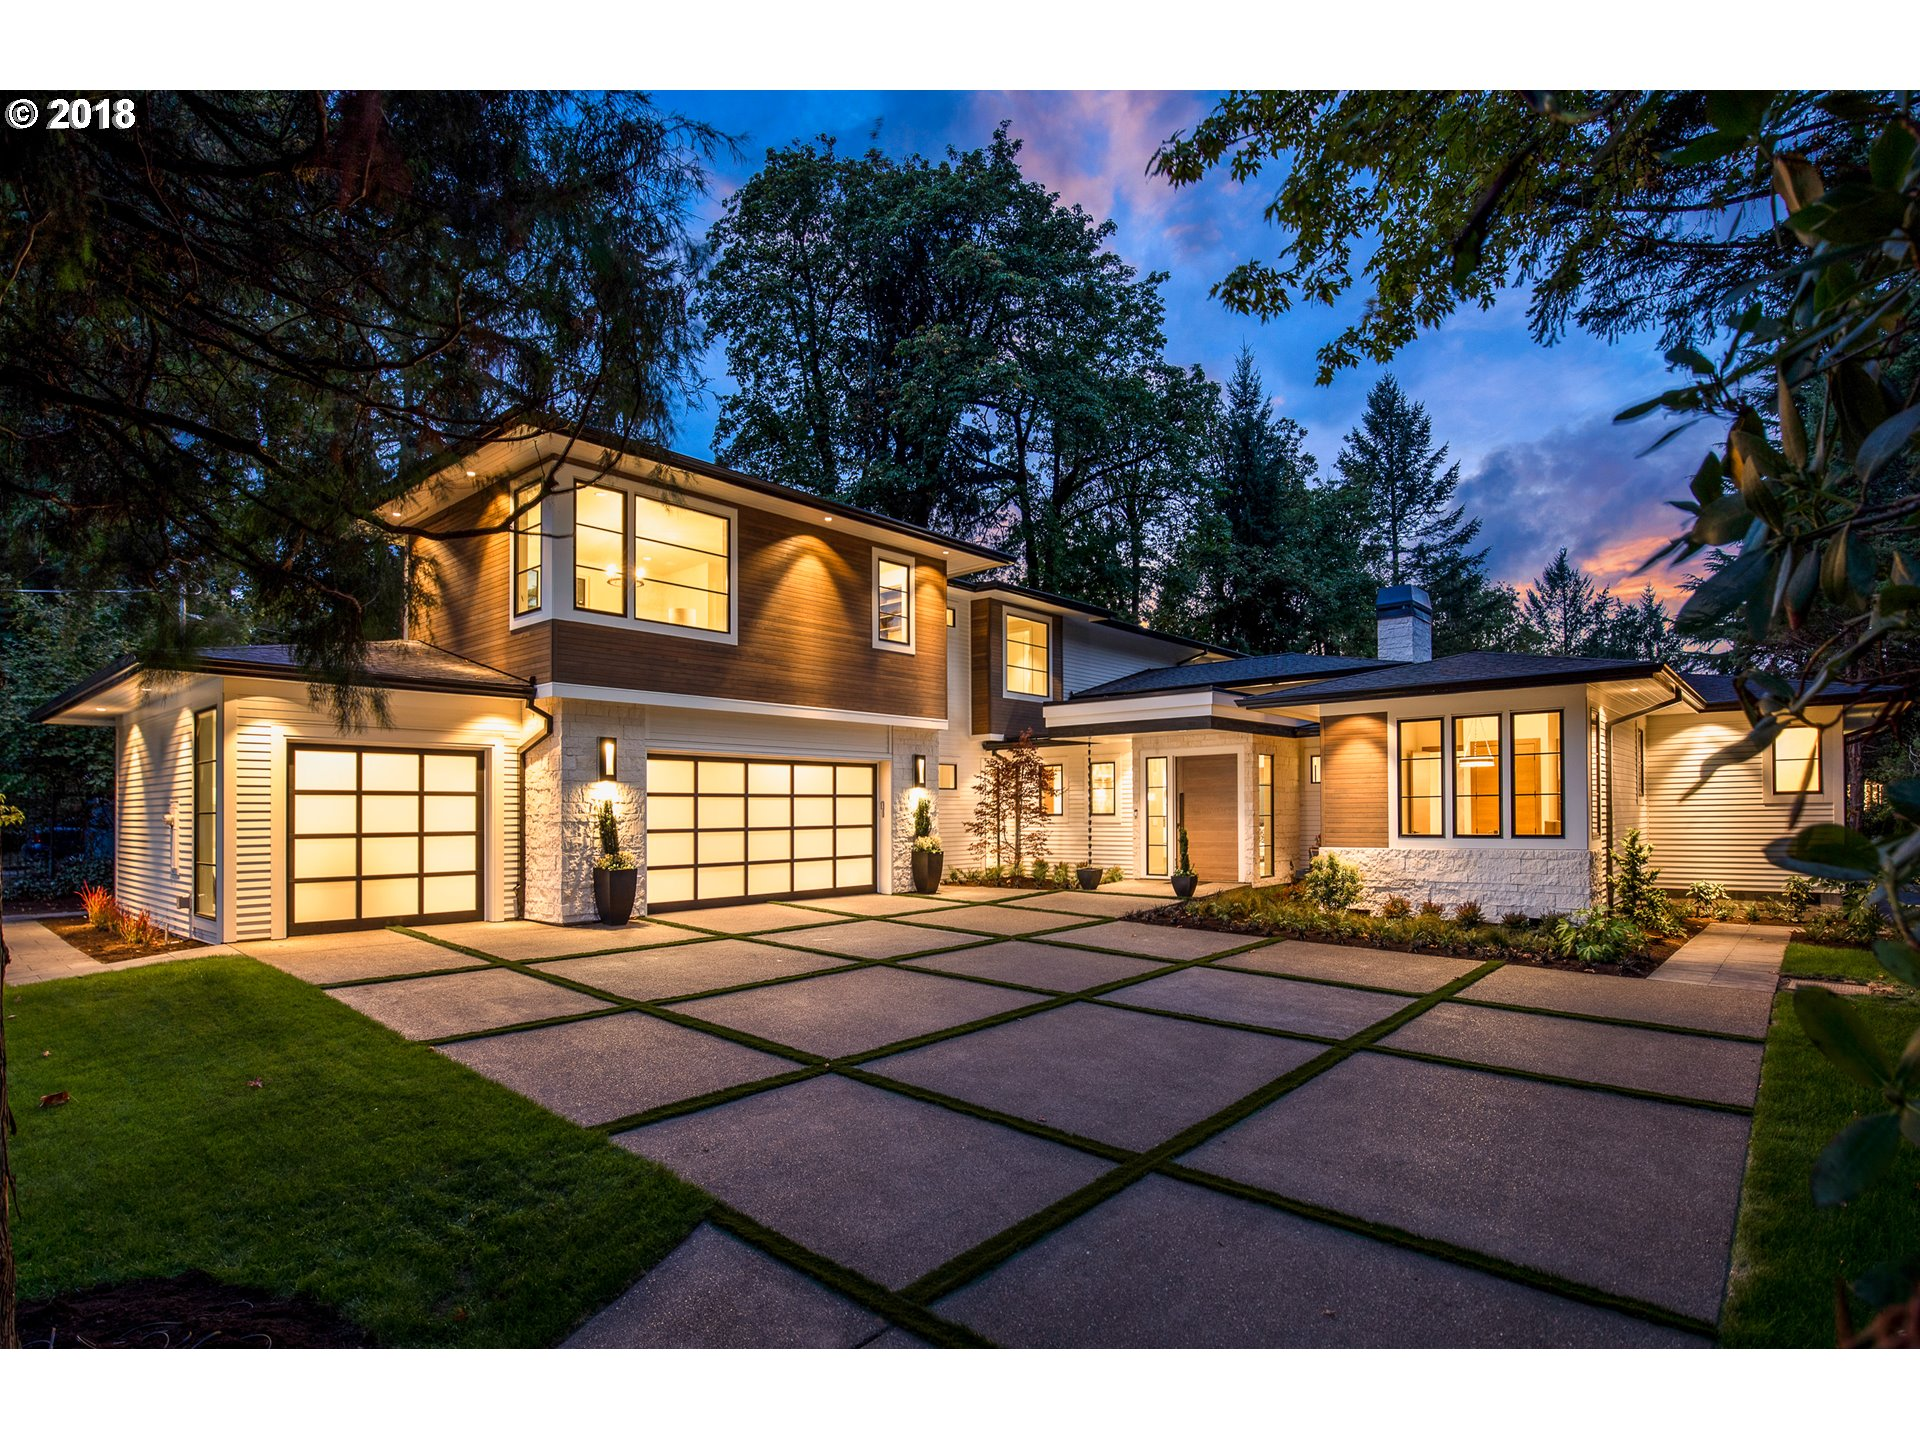 1387 SWMILITARY RD - SOLD!$2,650,000